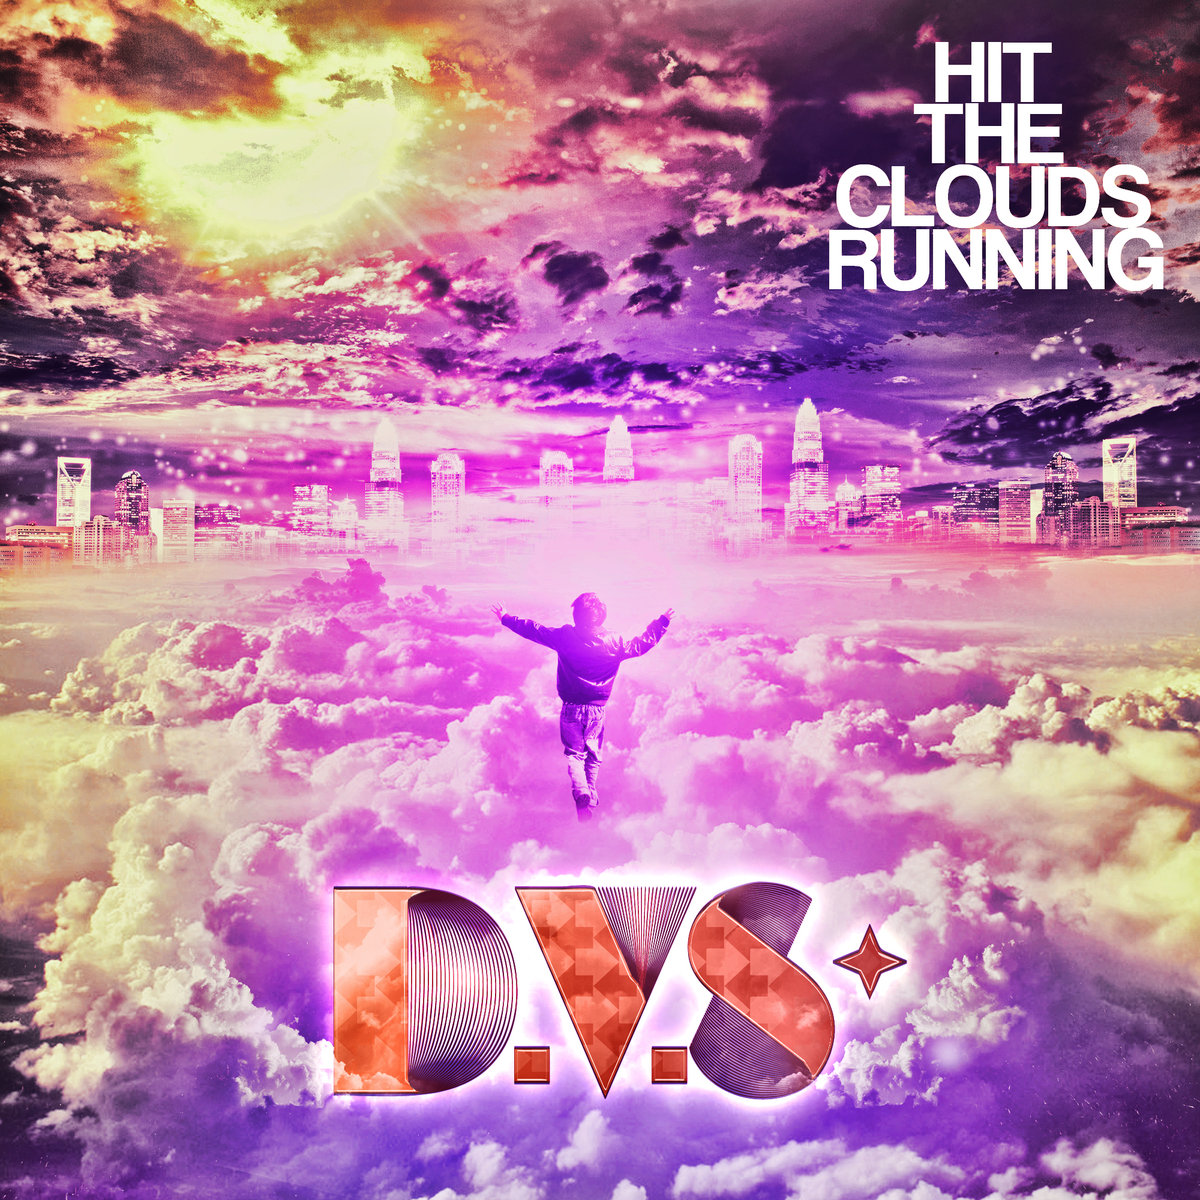 D.V.S* - Blame Me @ 'Hit The Clouds Running' album (electronica, guitar)